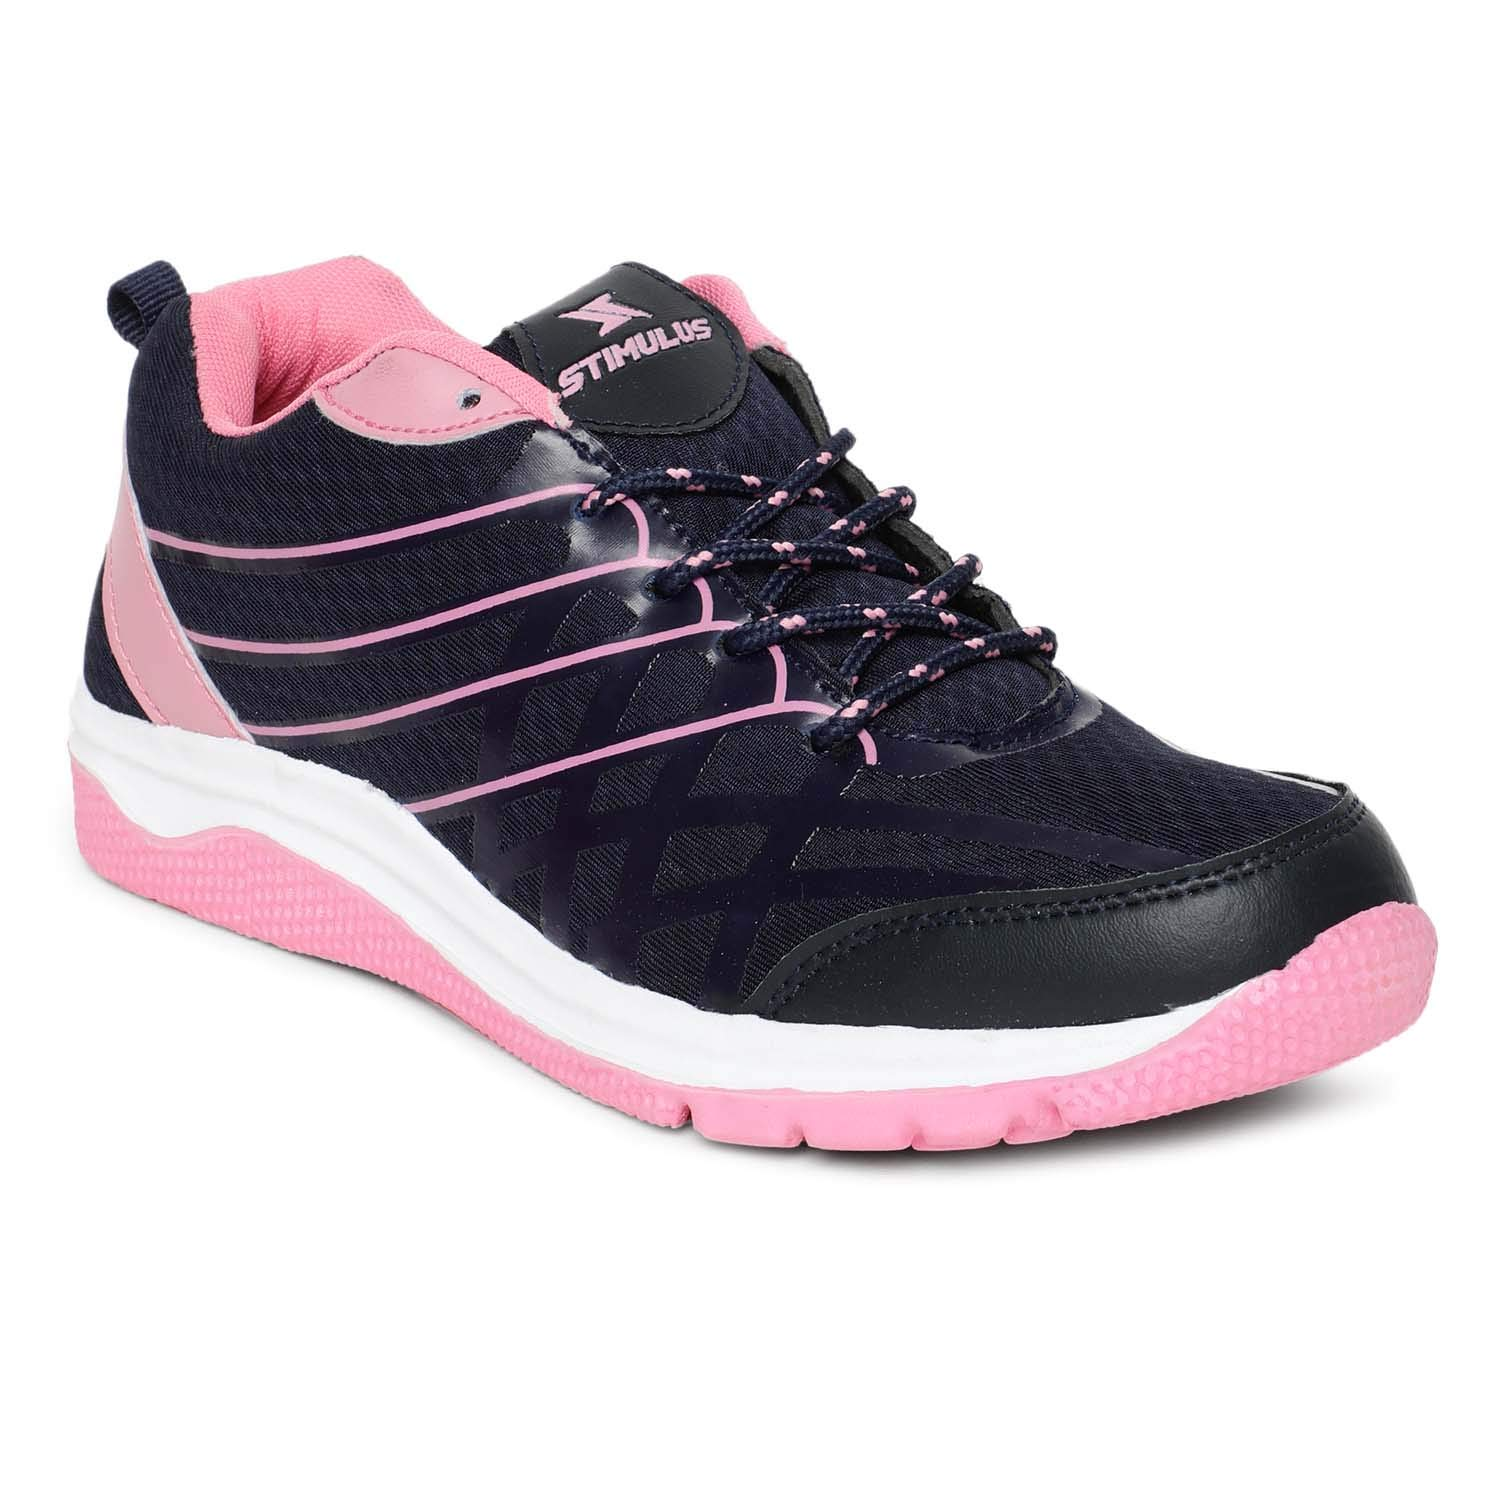 Stimulus Pink Casual Shoes at Amazon